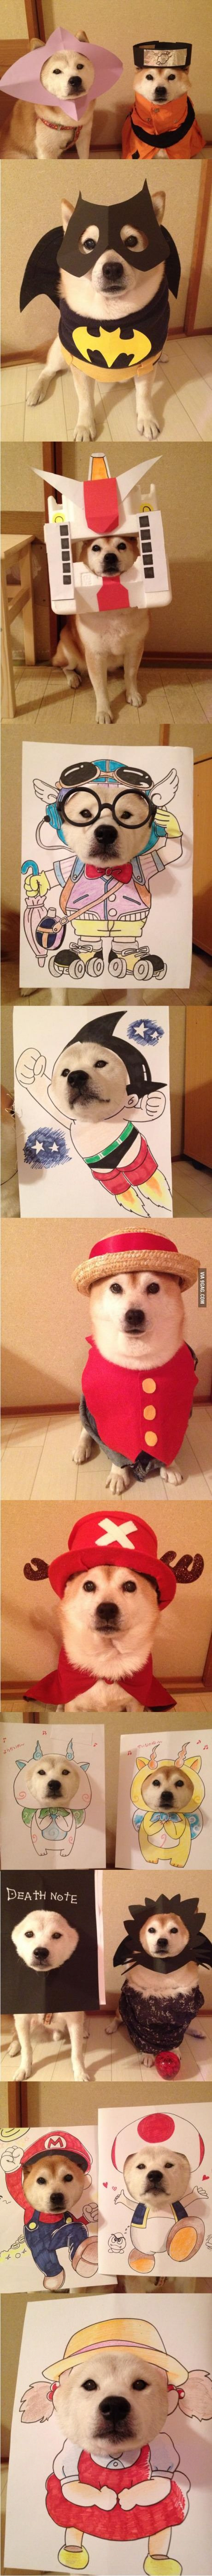 11 Adorable Shiba Cosplays That Are Much Cute, Very Wow - Those are some patient Shibas.